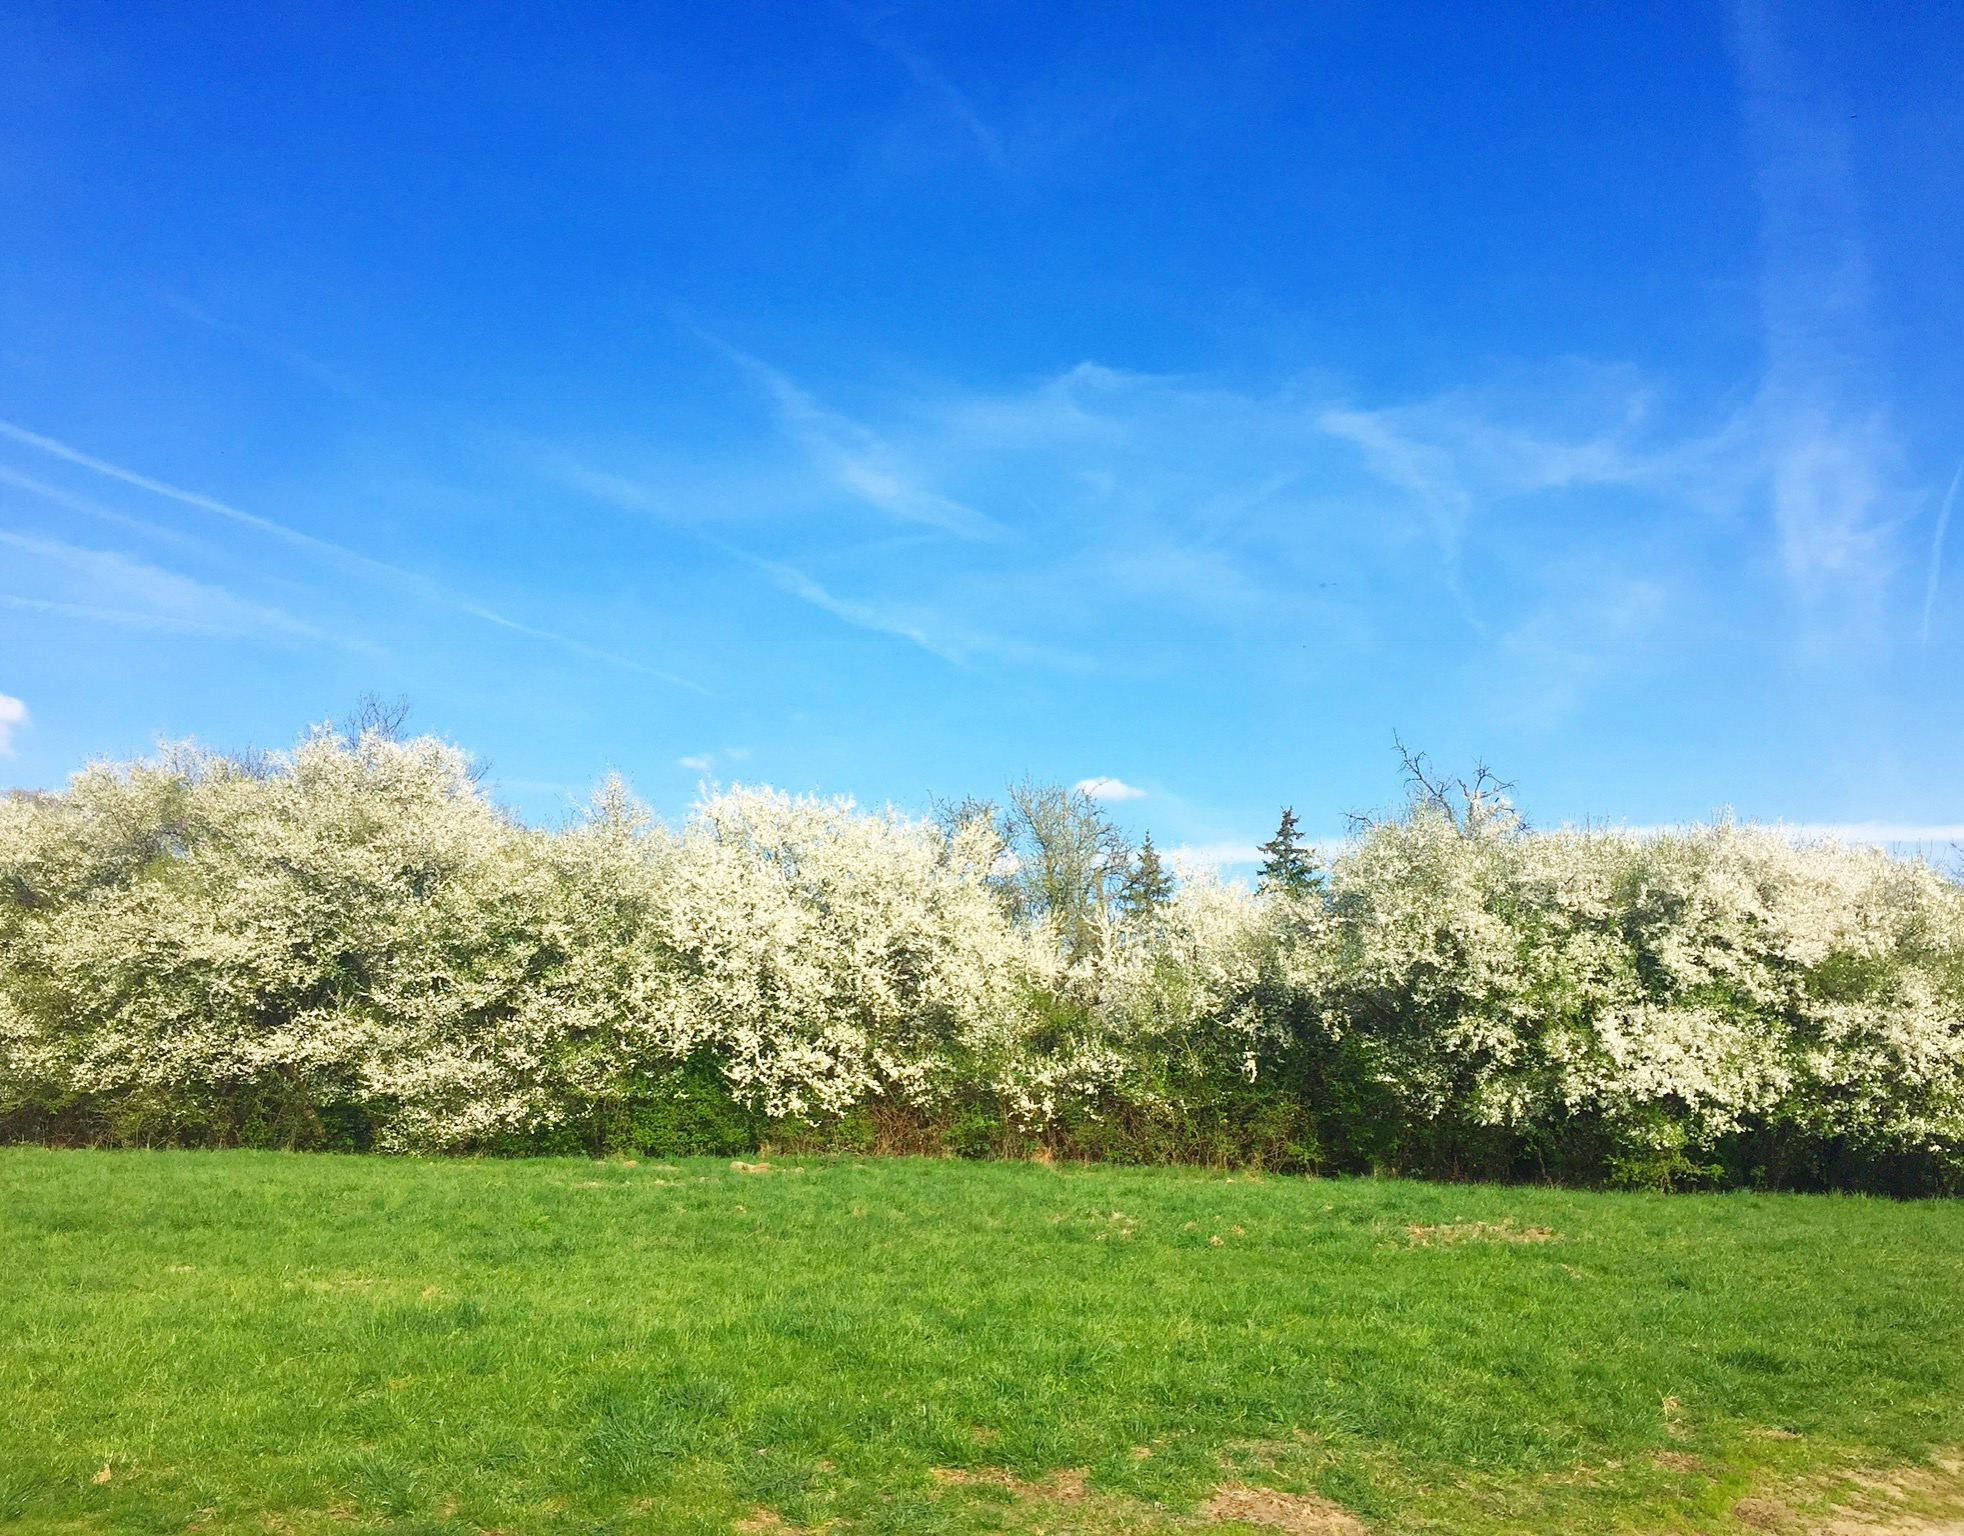 Blossom trees in Germany